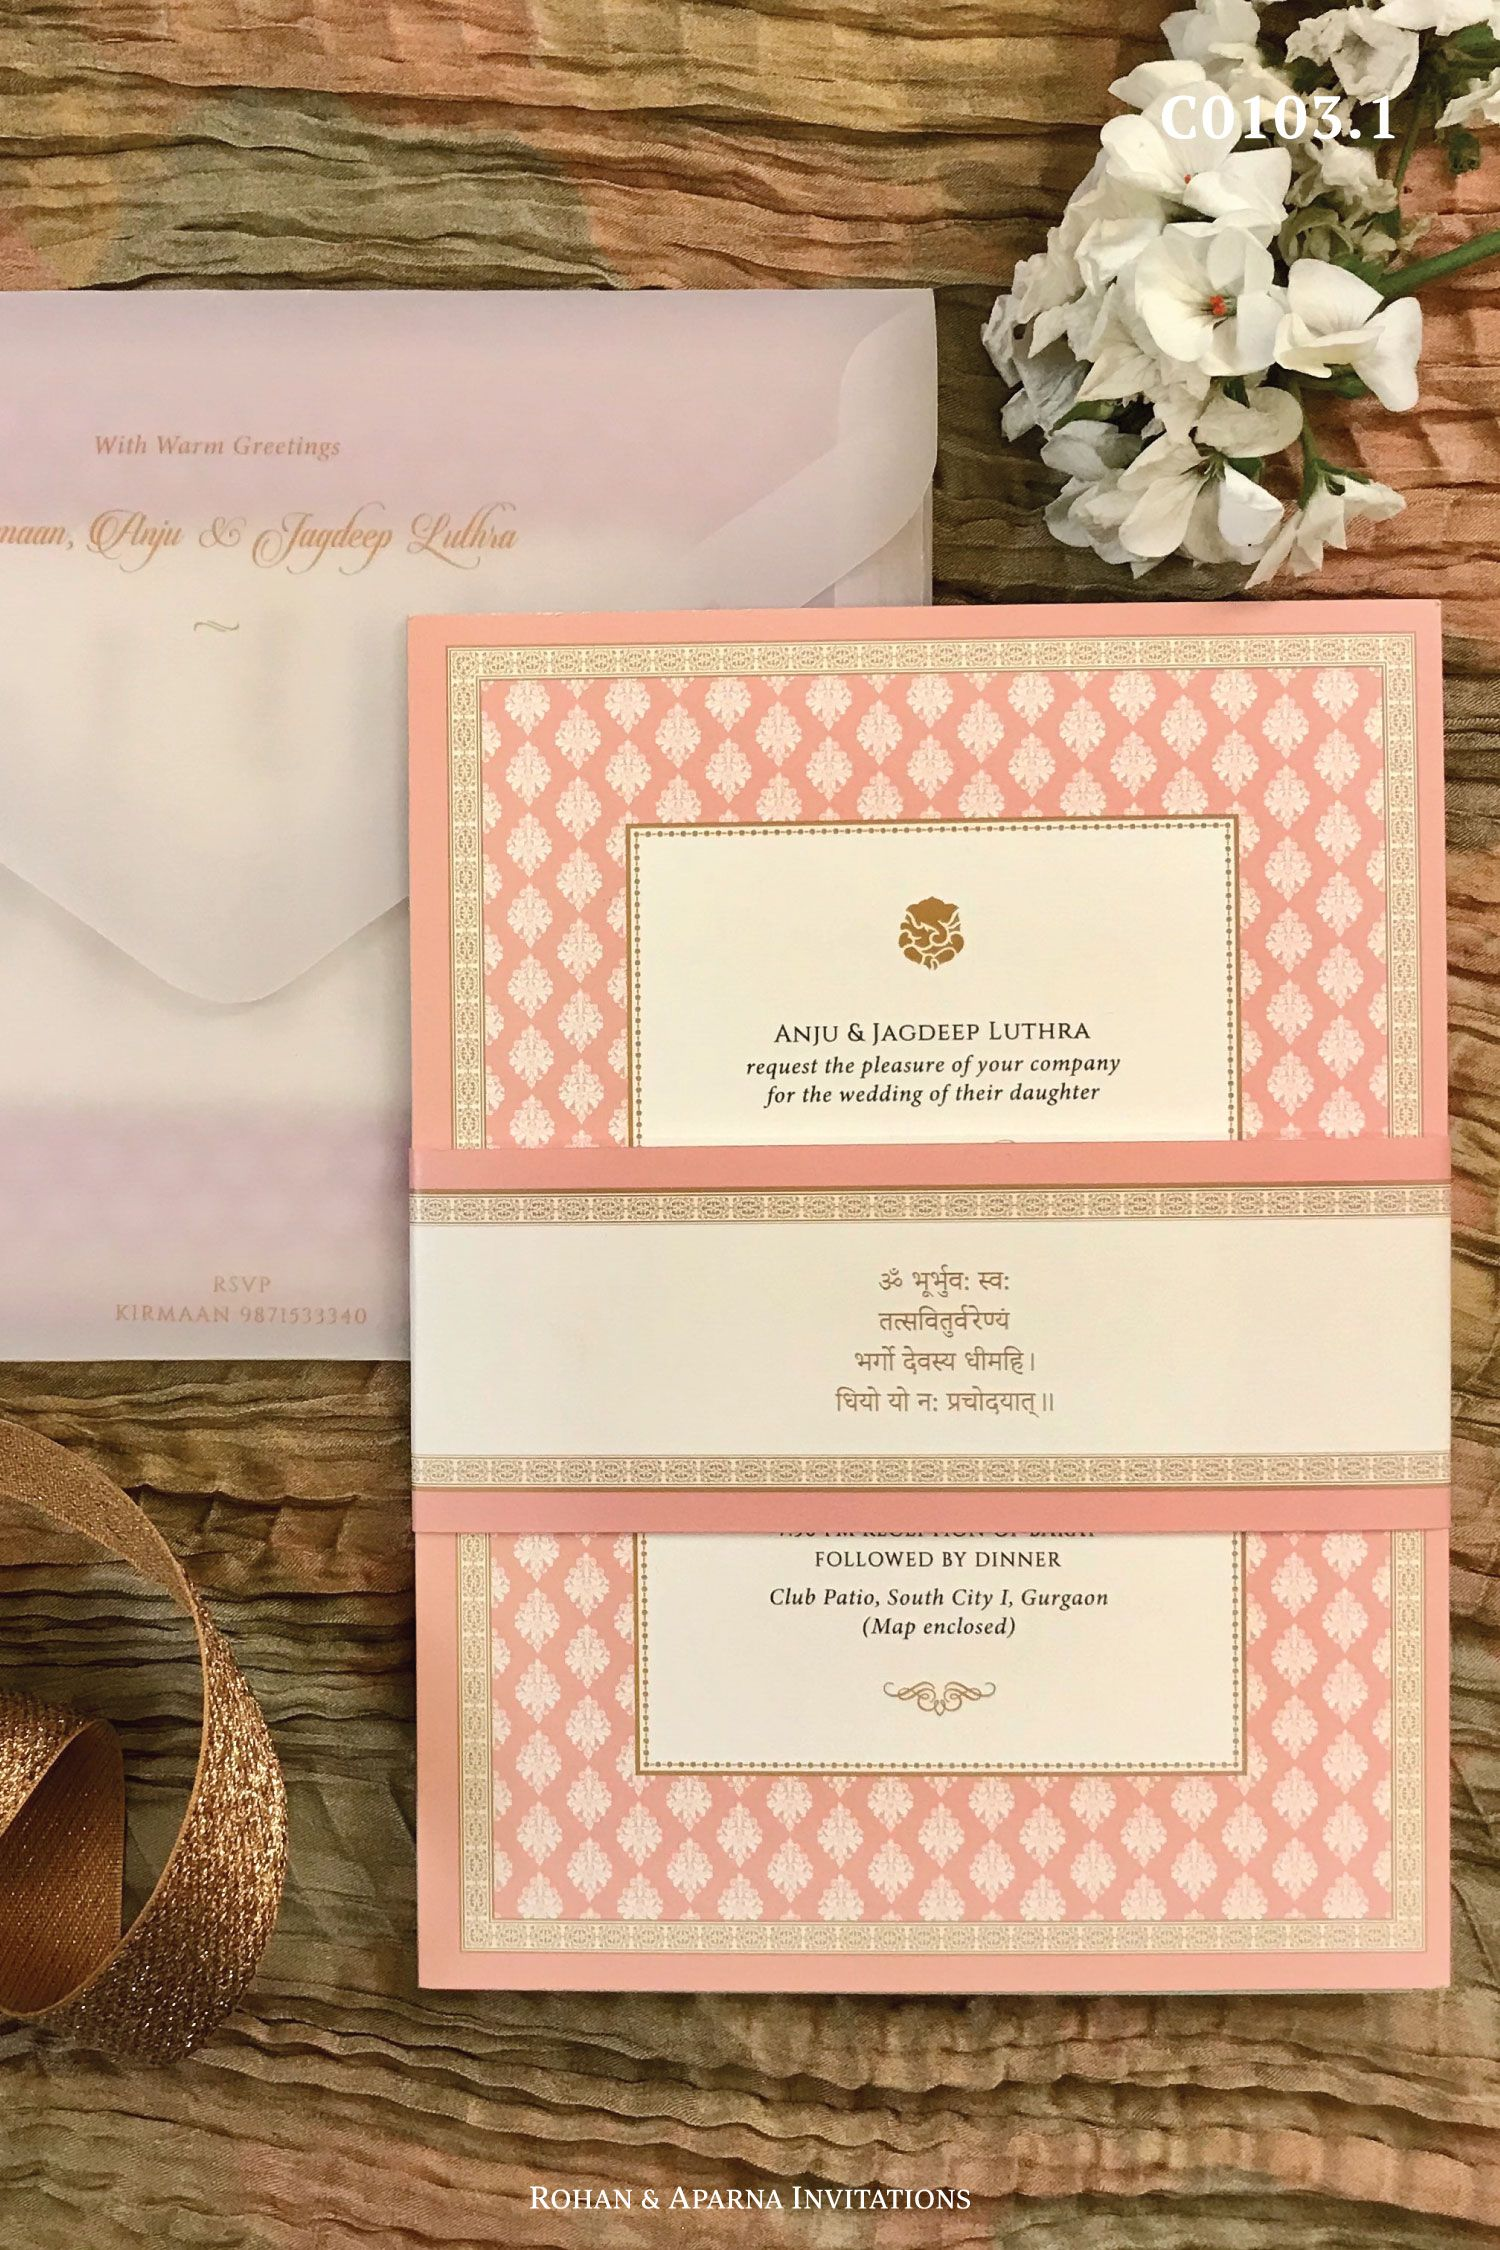 Buti patterned wedding invitation in pastel colors with a unique vellum paper envelope and a band. For more design ideas, visit www.rohanaparna.com  ——————————————— #rohanaparnainvitations #weddinginvitations #weddingcards #indianweddingcard #reception #weddingcard #shaadi #shaadicard#hinduweddingcard #mehendi #indianwedding #ecard #destinationwedding #weddingcards #royalwedding #pastelwedding #vellumenvelope #Ganeshji